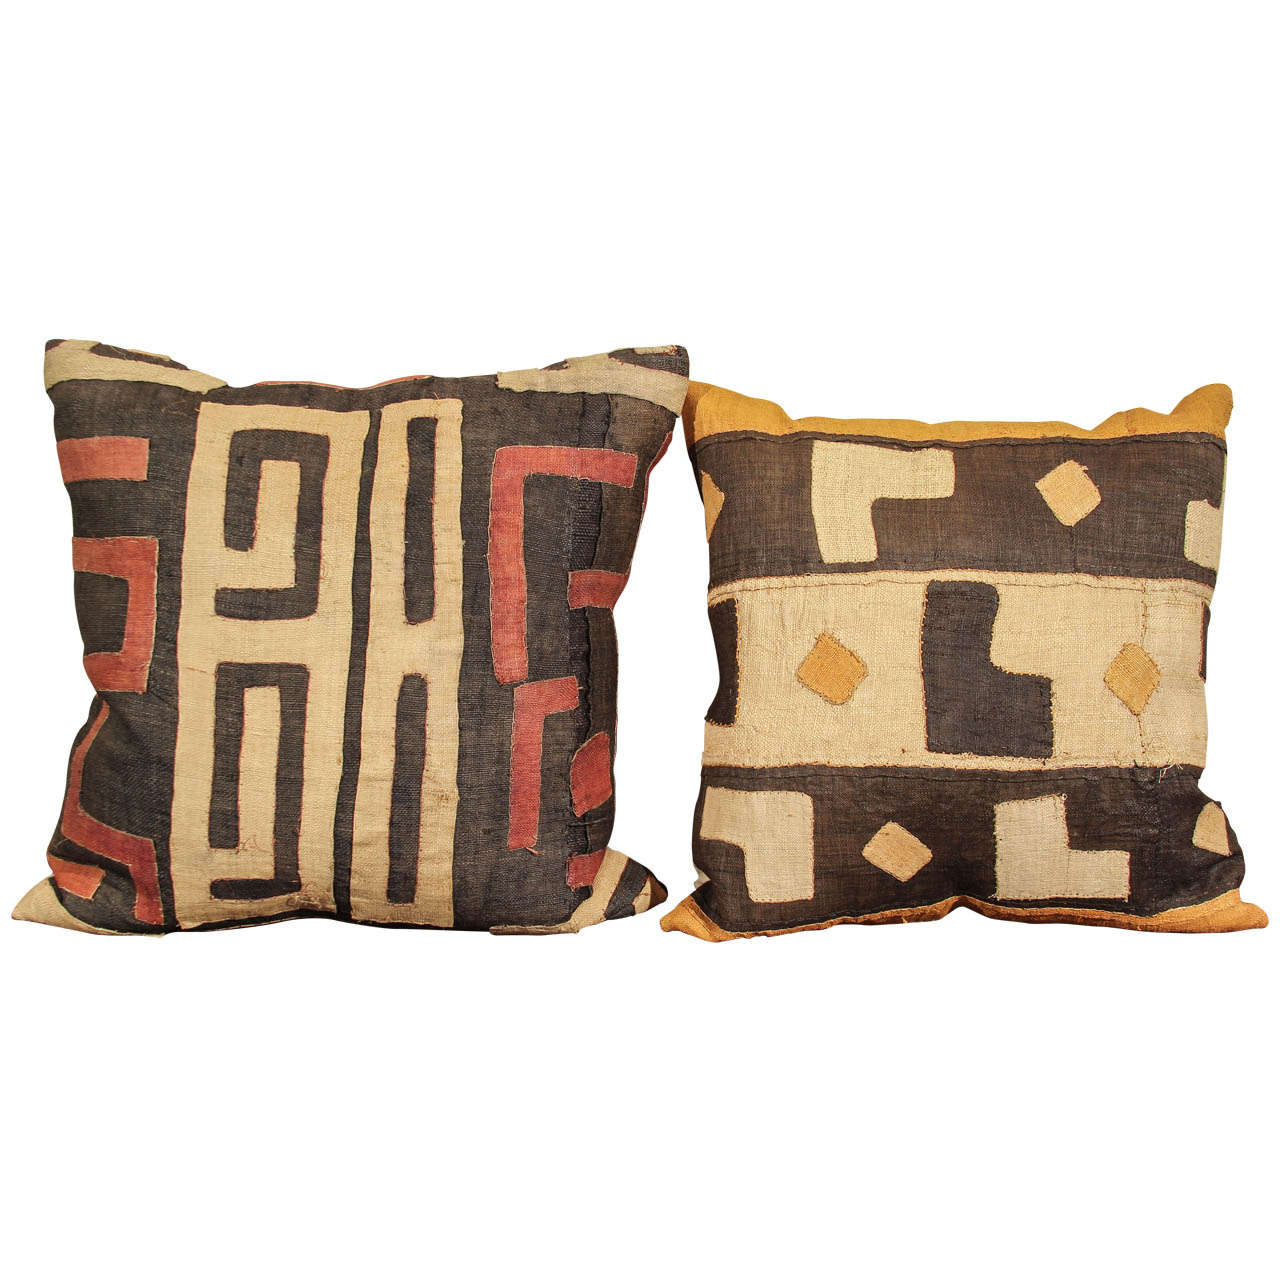 KUBA CLOTH PILLOW by    - Masterpiece Online